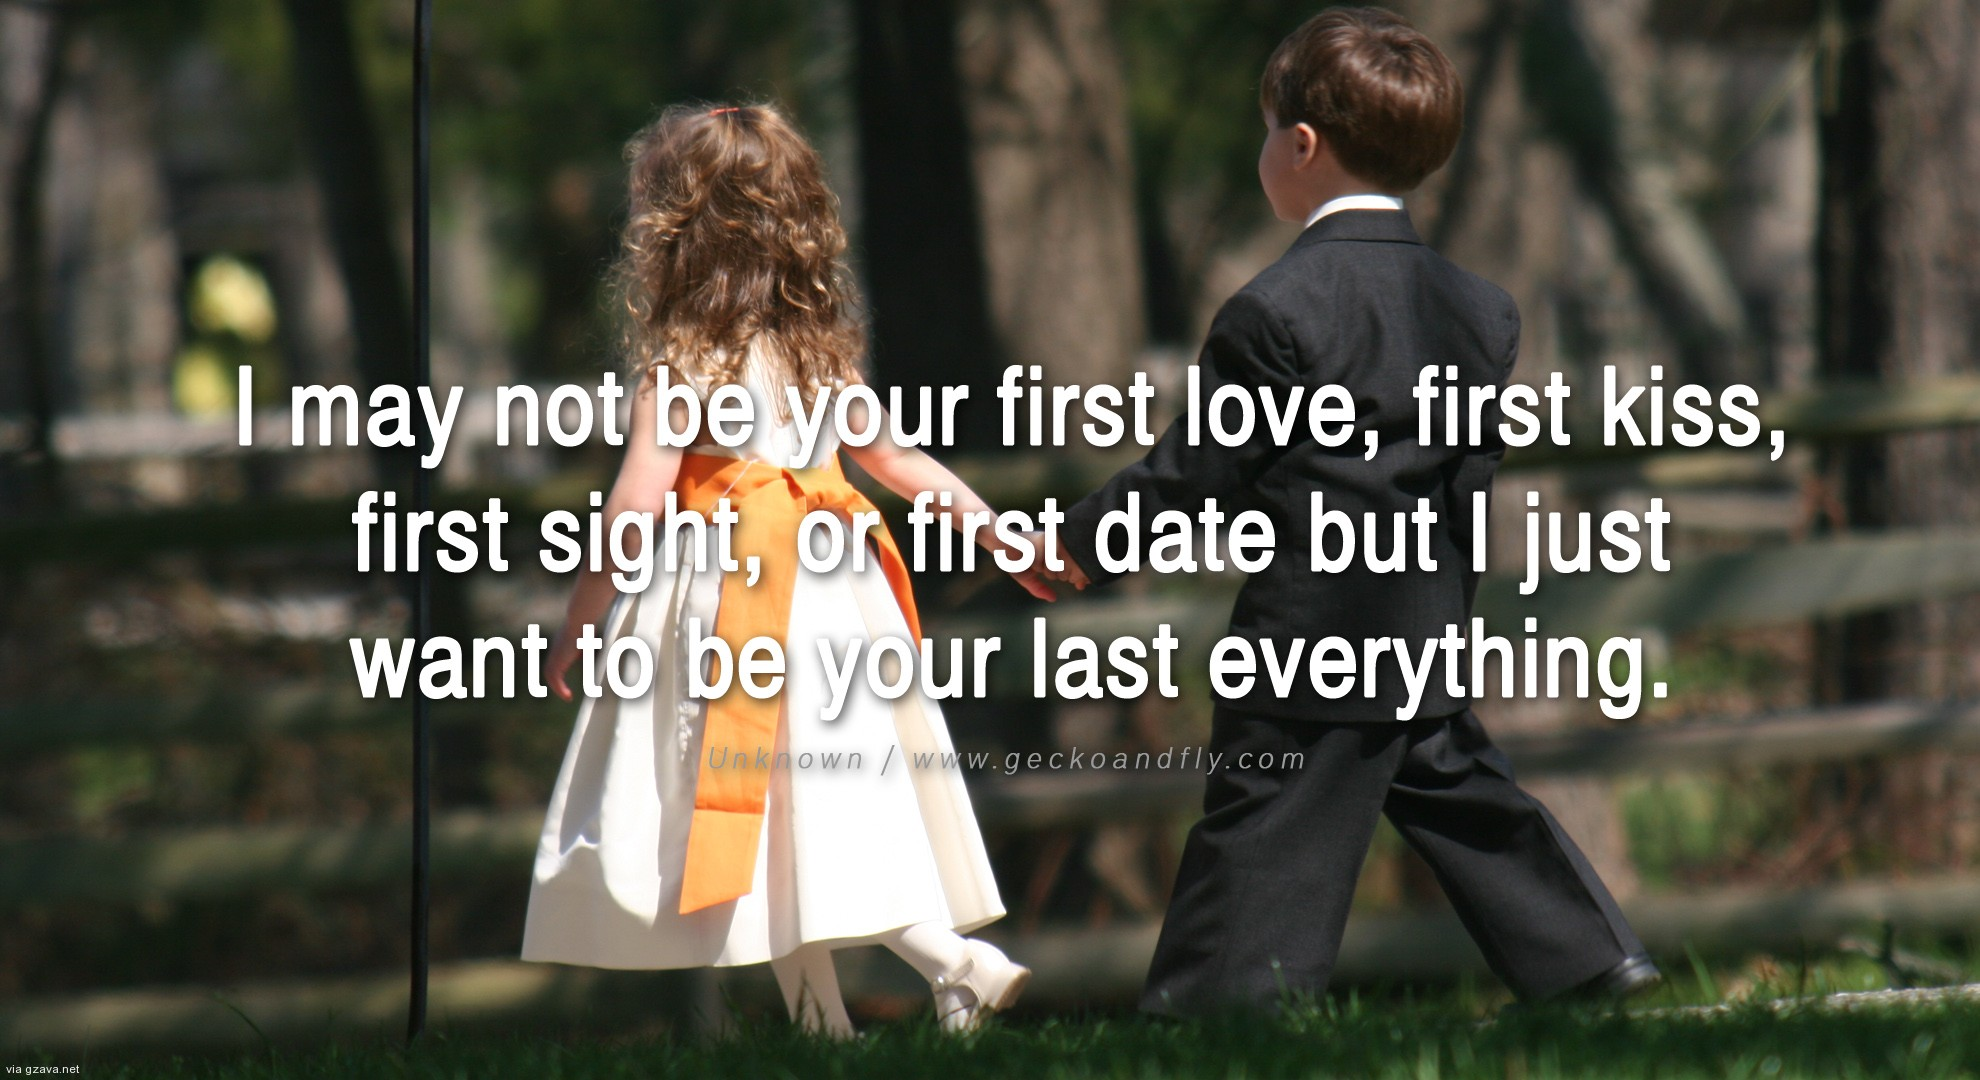 quotes about being put last in a relationship